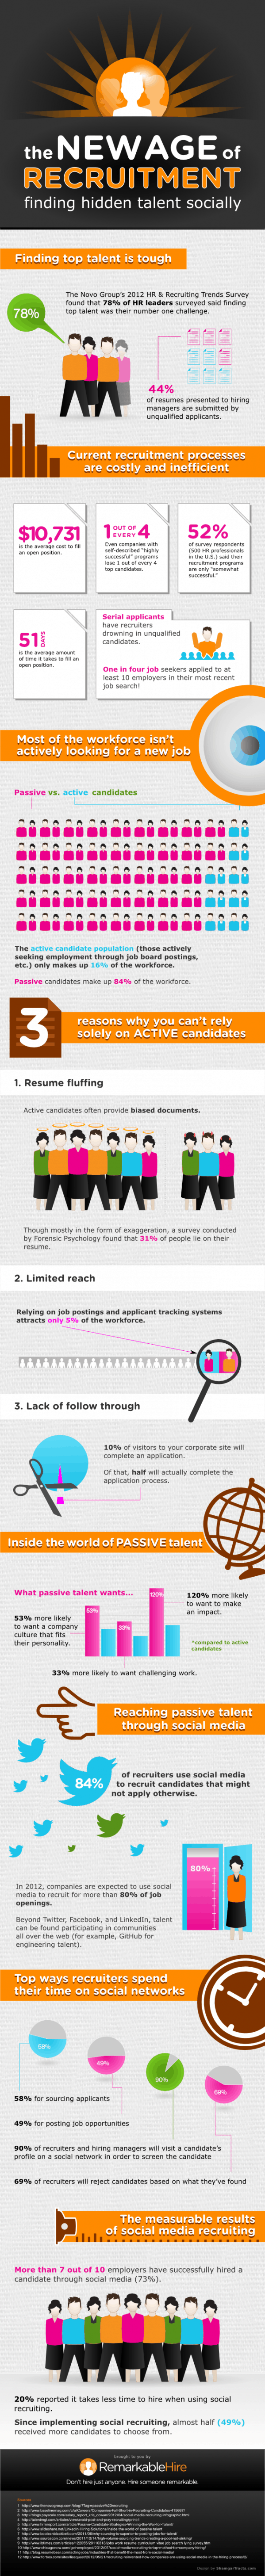 social recruiting finding talent